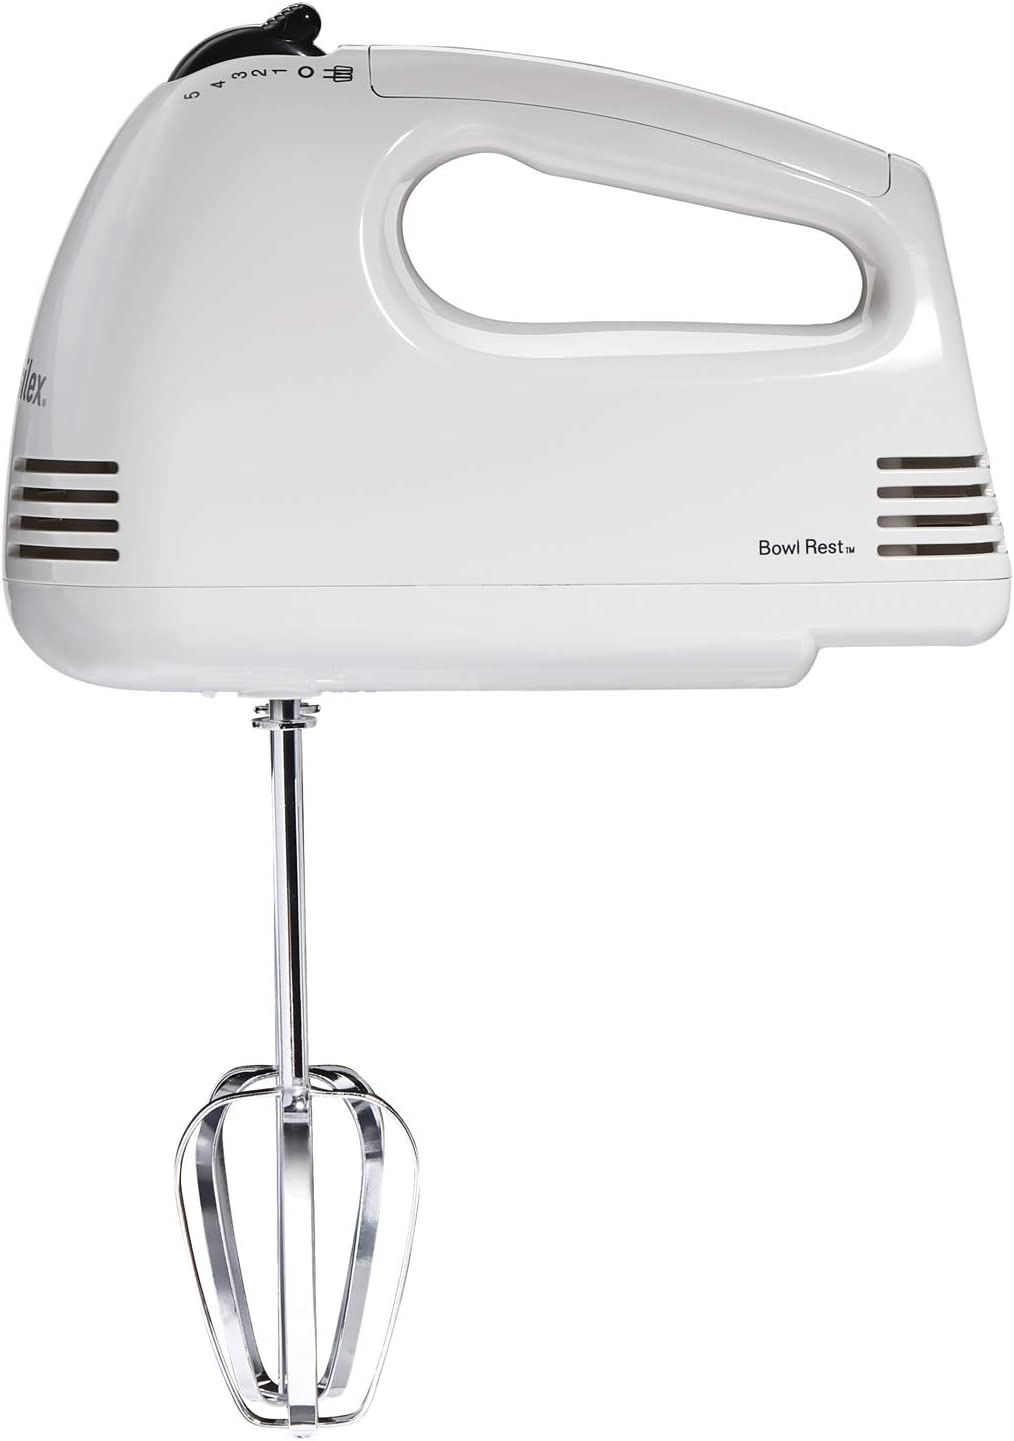 Proctor Silex 5-Speed Easy Mix Electric Hand Mixer with Bowl Rest, White (62515PS)